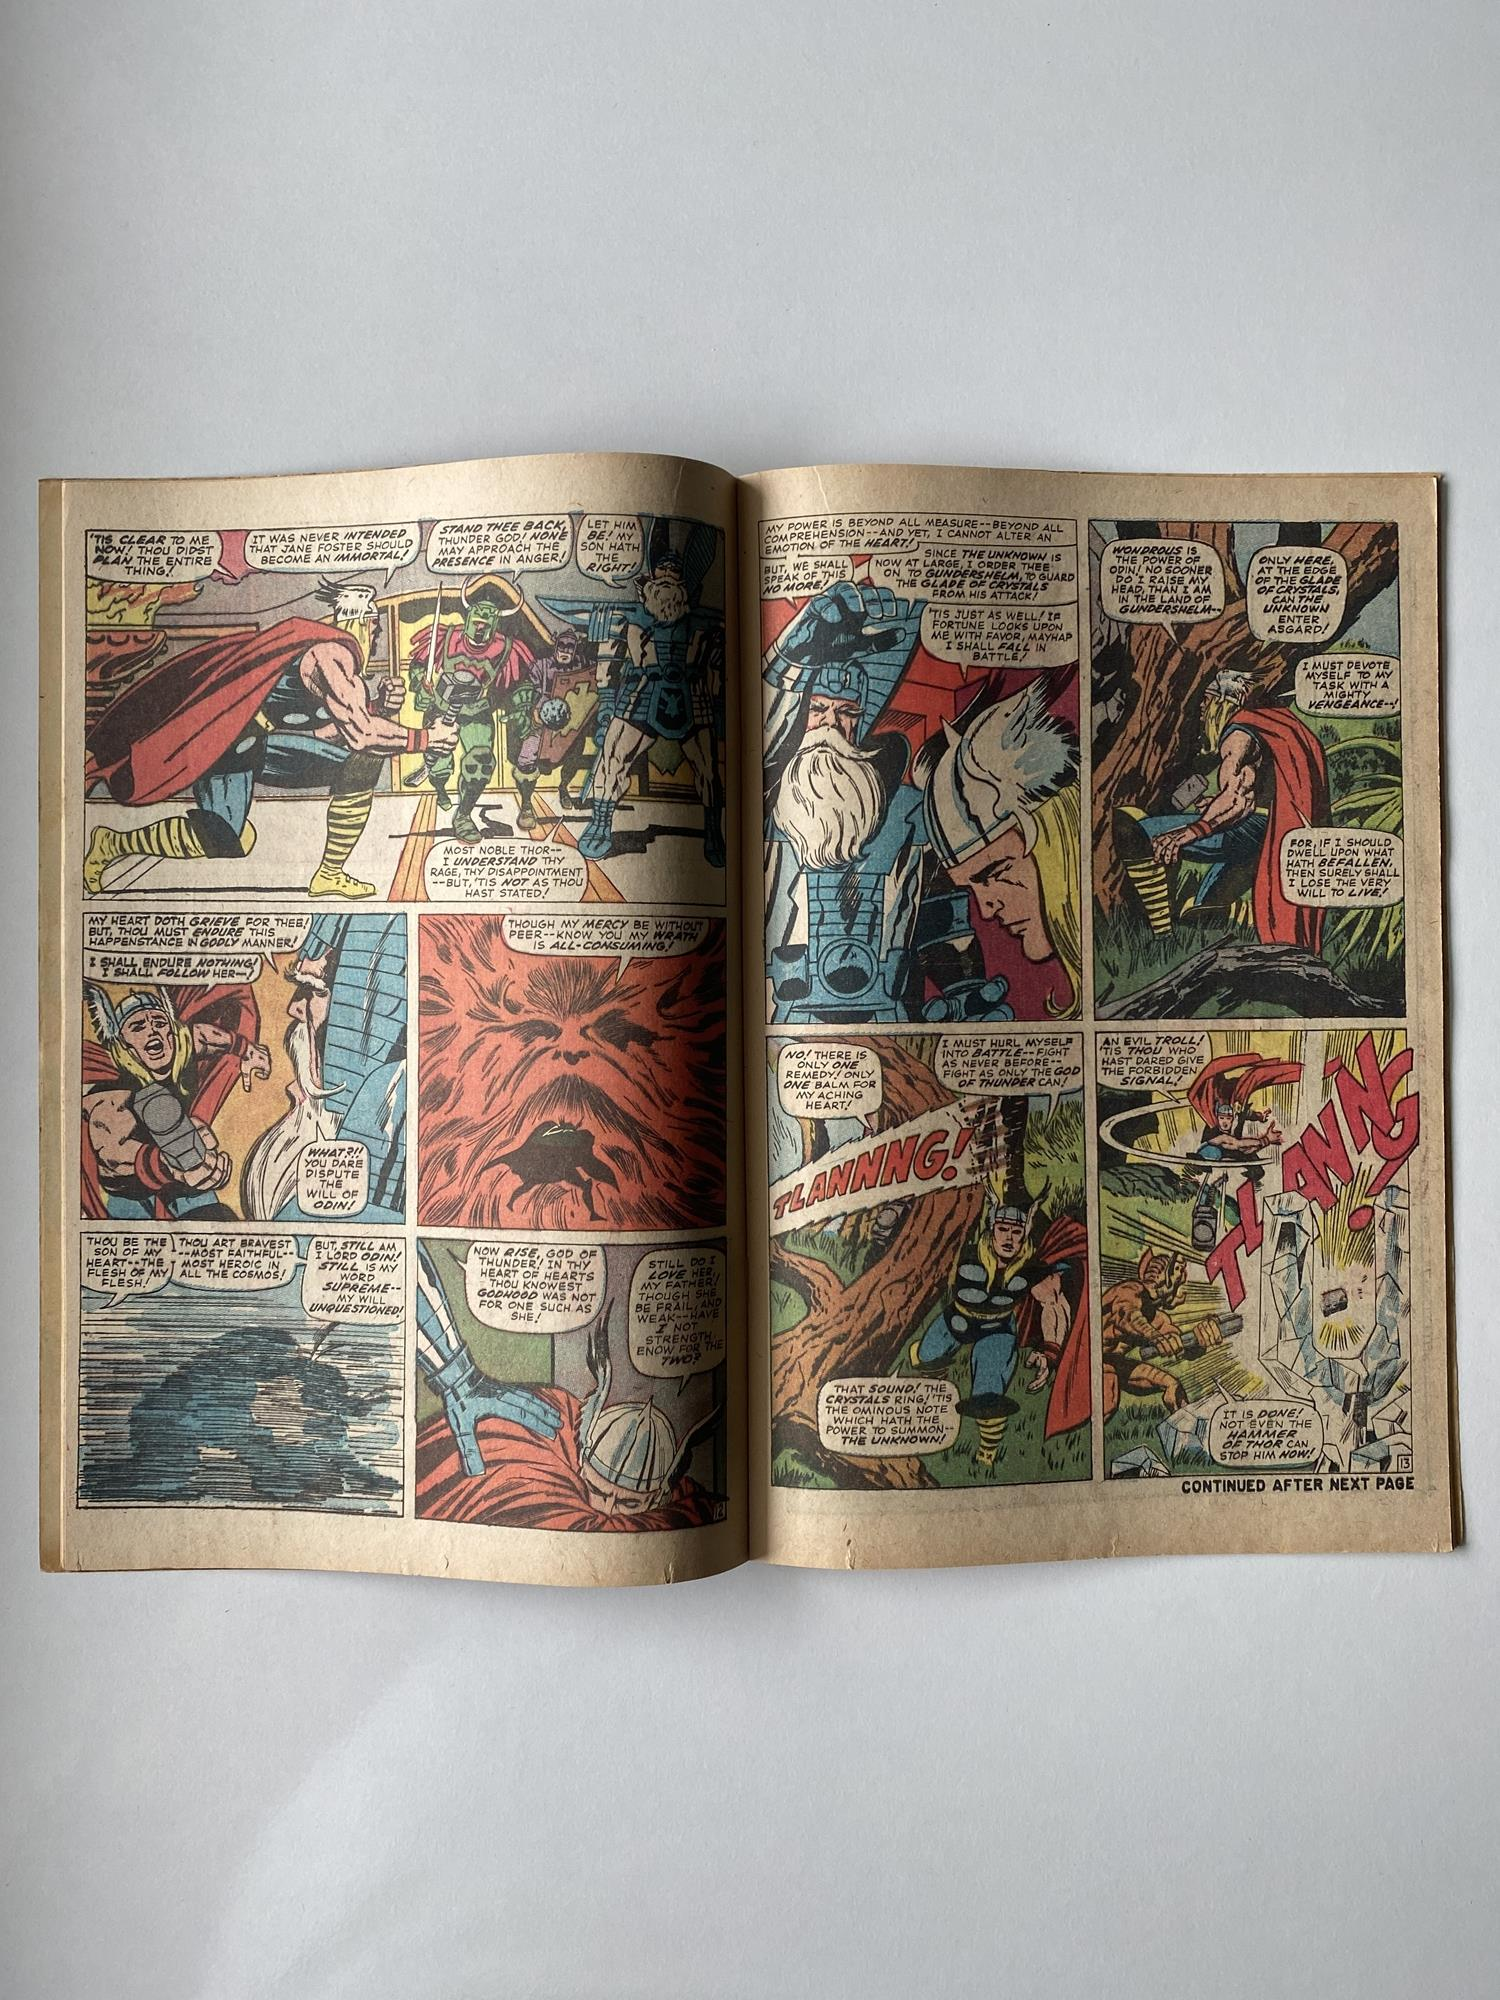 Lot 19 - THOR # 136 (1967 - MARVEL - Pence Copy) - Second appearance of Lady Sif - Jack Kirby cover and